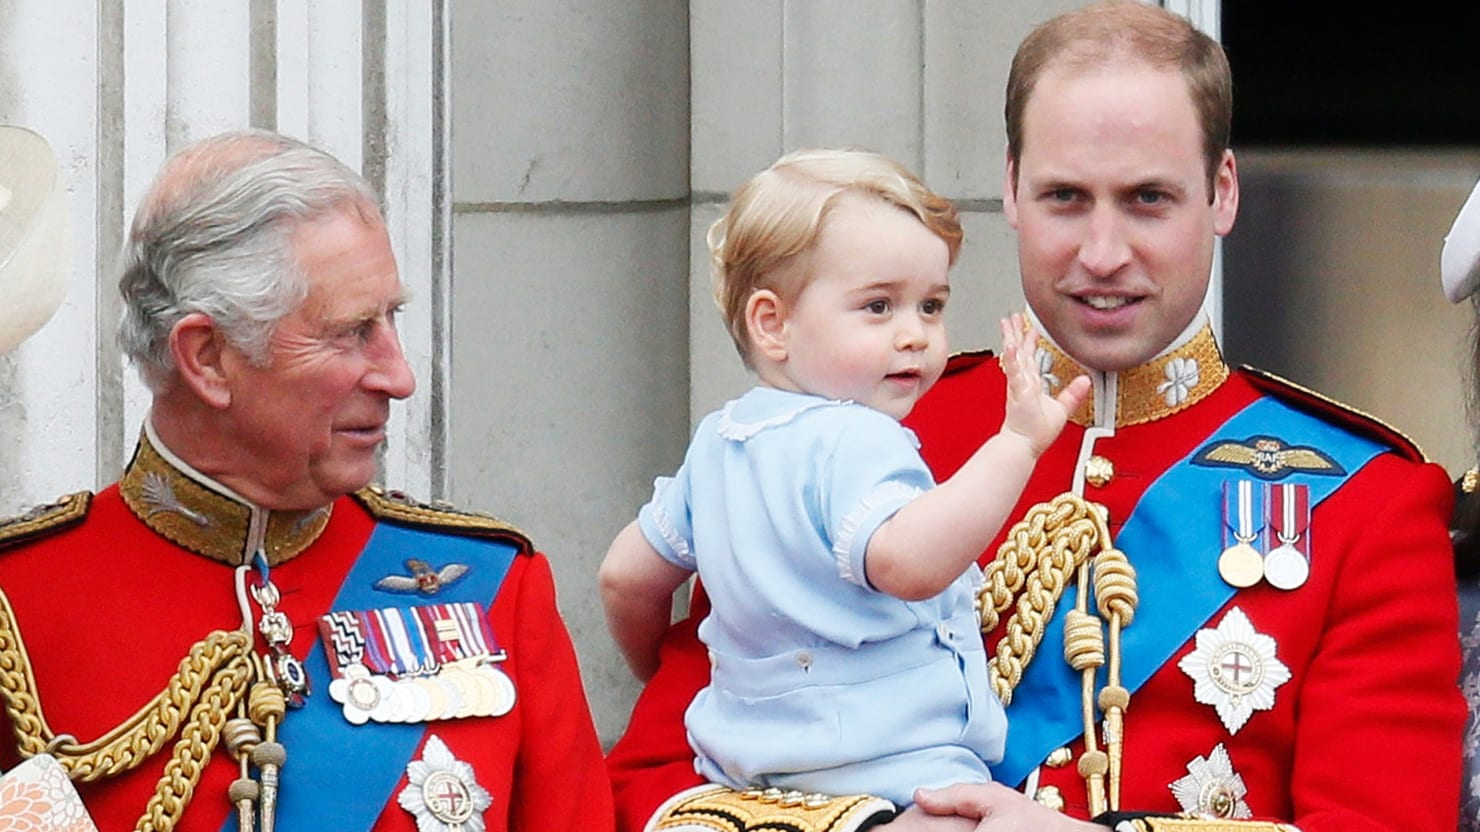 Prince Charles gave his grandson a wonderful birthday present 30.07.2015 19